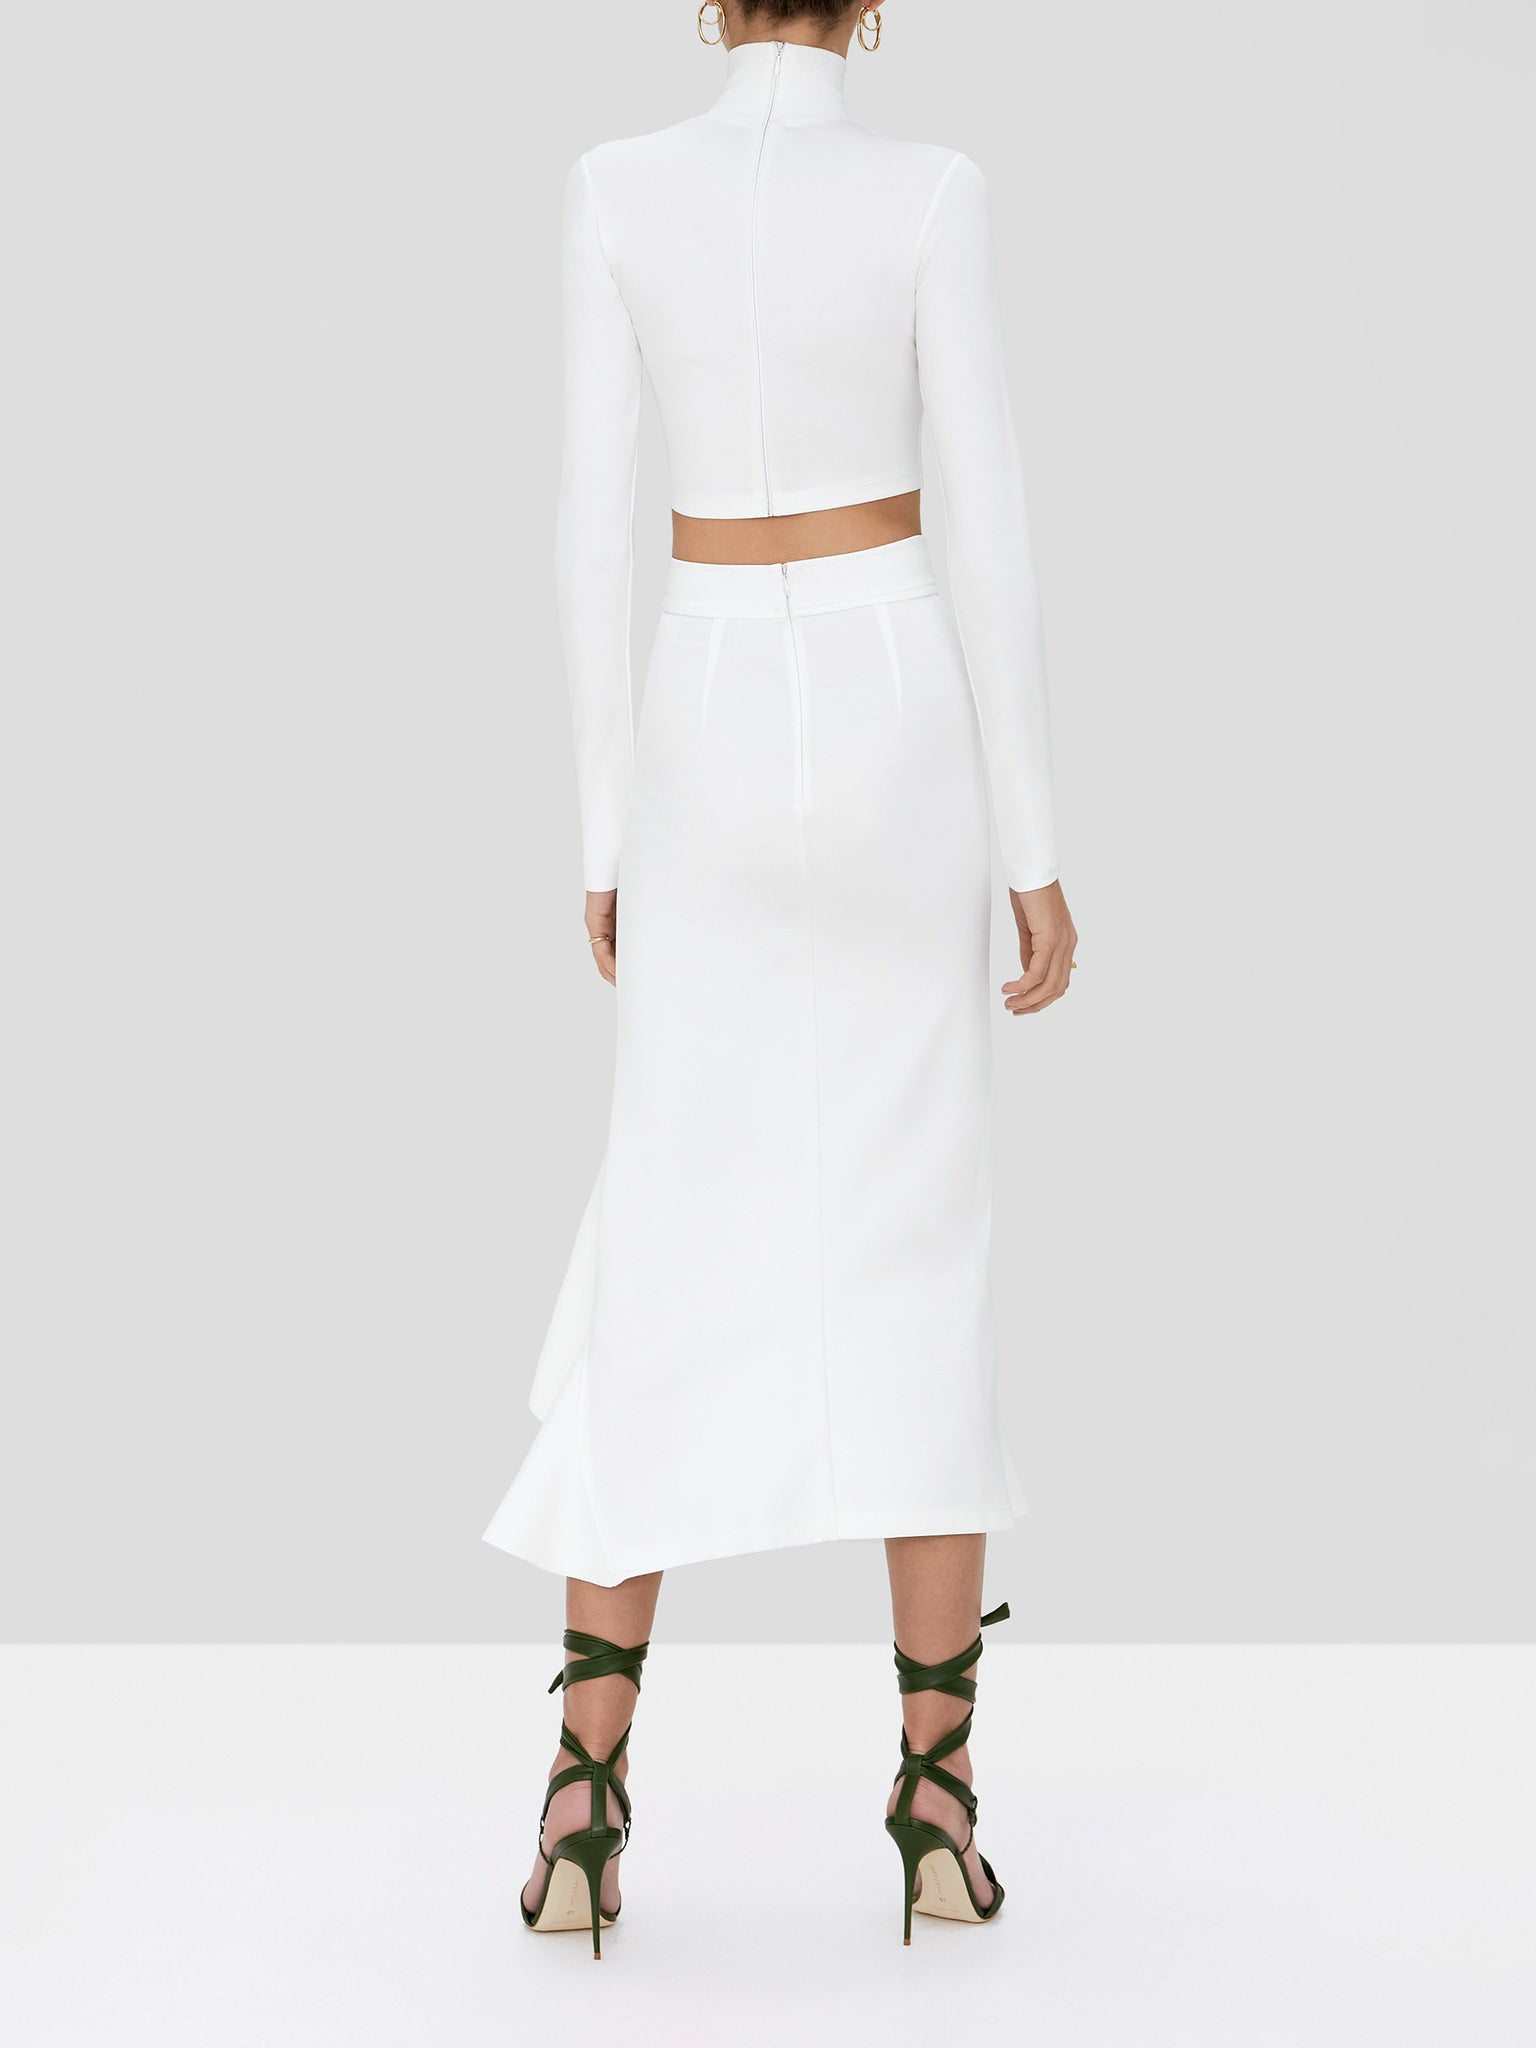 bani skirt in white - Rear View